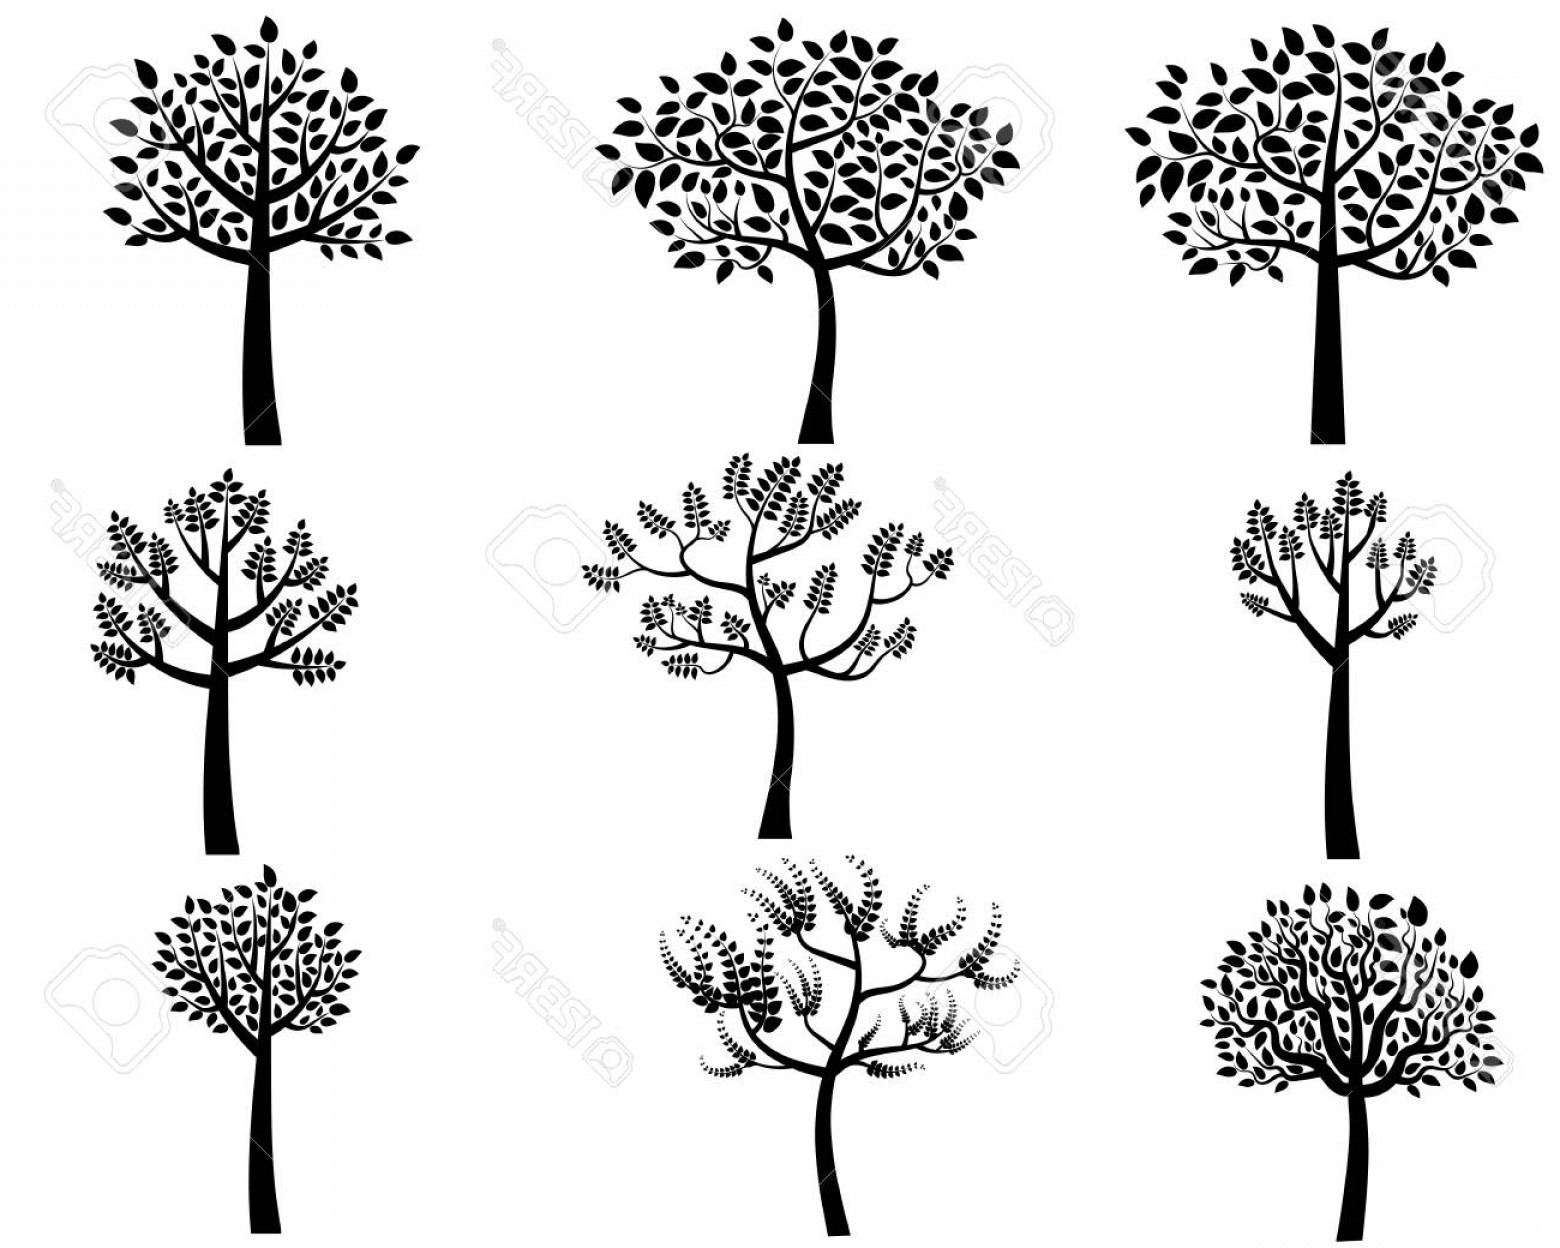 Contoon Free Black Vector Tree: Photostock Vector Black Cartoon Vector Tree Silhouettes With Leaves